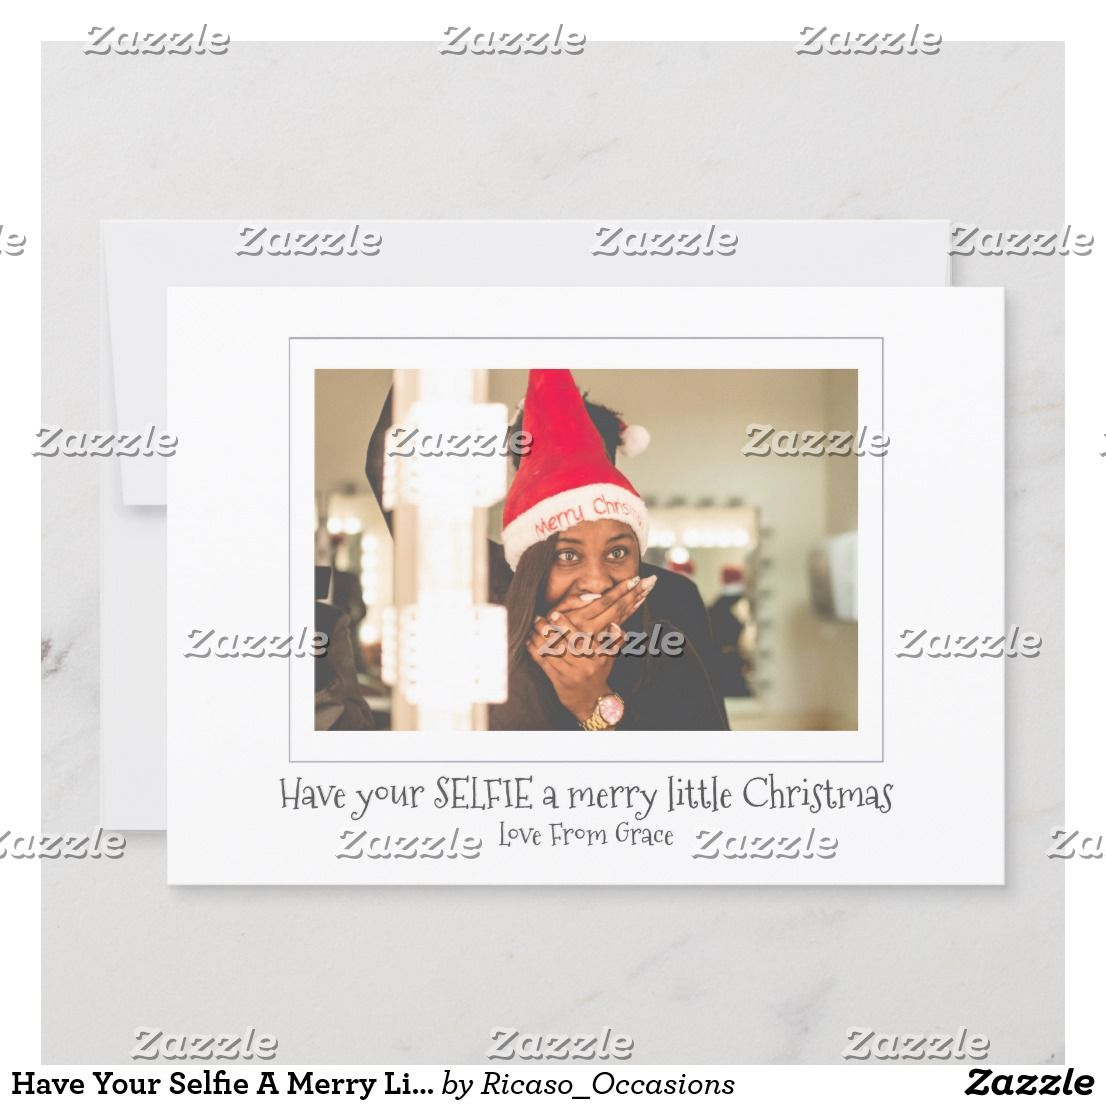 Have Your Selfie A Merry Little Christmas Holiday Card Zazzle Com Christmas Holiday Cards Holiday Design Card Merry Little Christmas